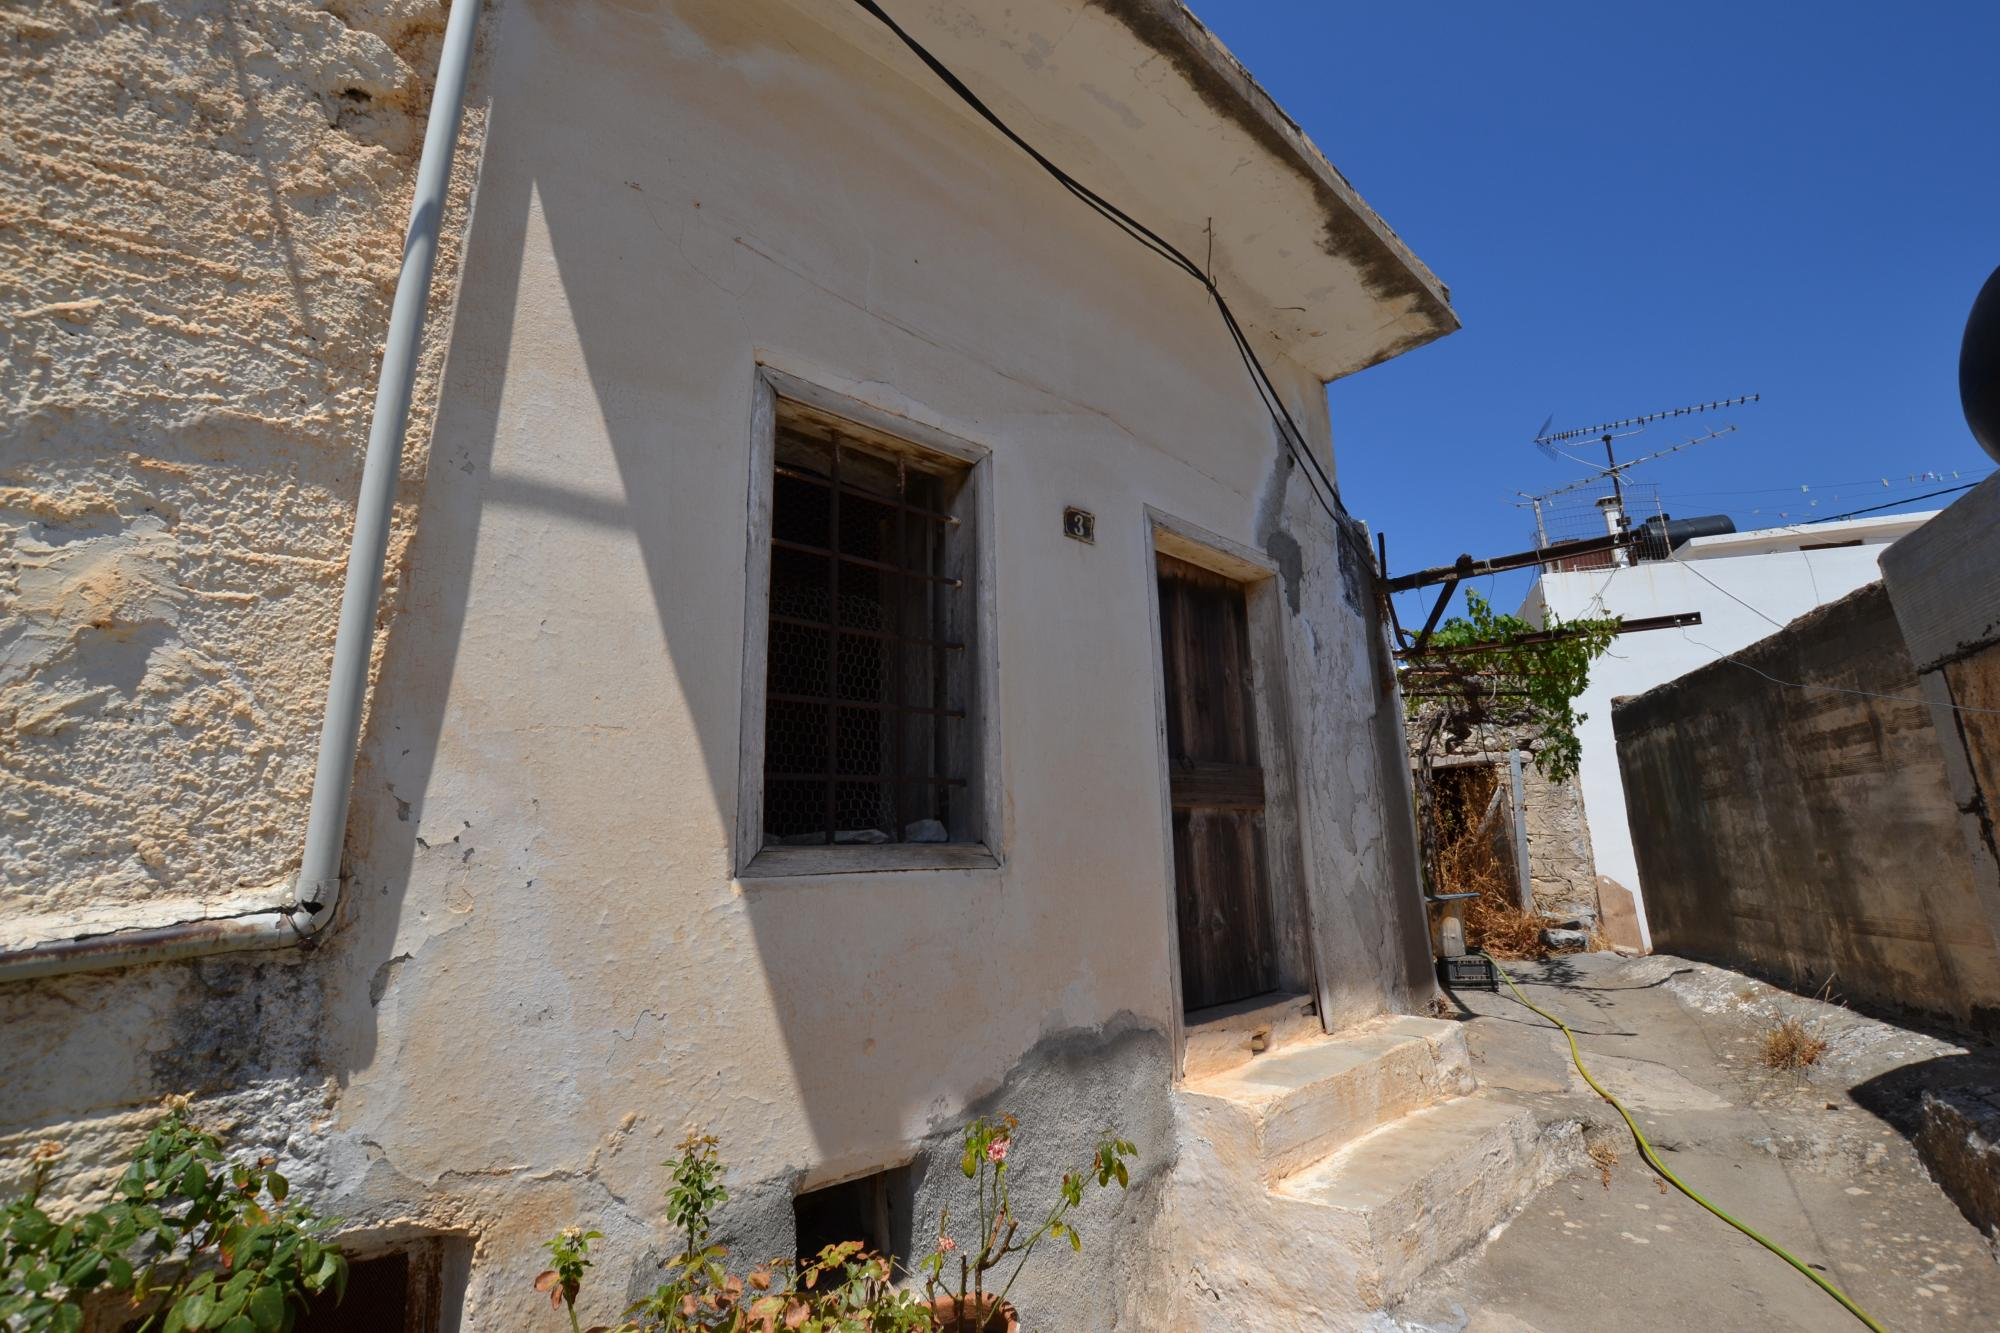 Stone house for renovation in top part of village. Sea views from roof terrace.